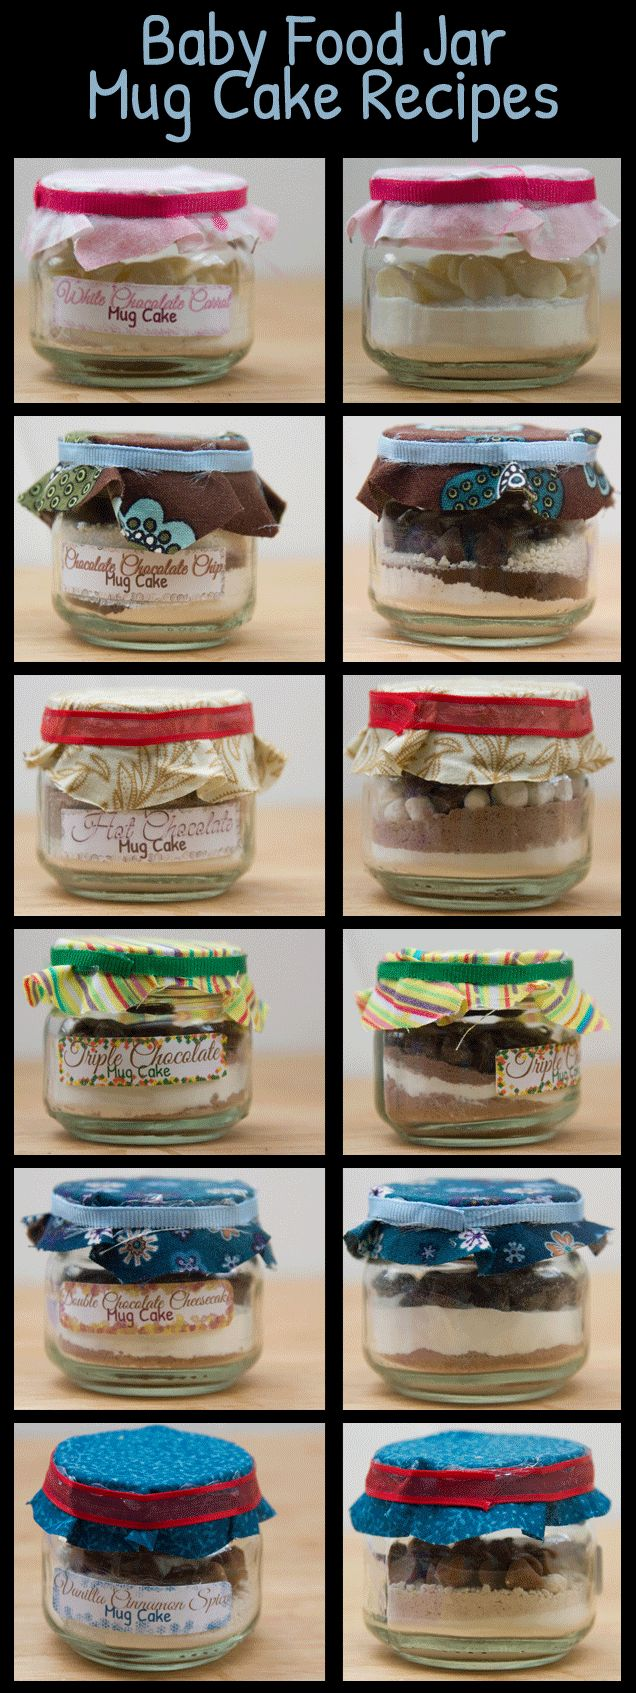 Mug cake recipes: use baby food jars to package them in. Uses cake mix.